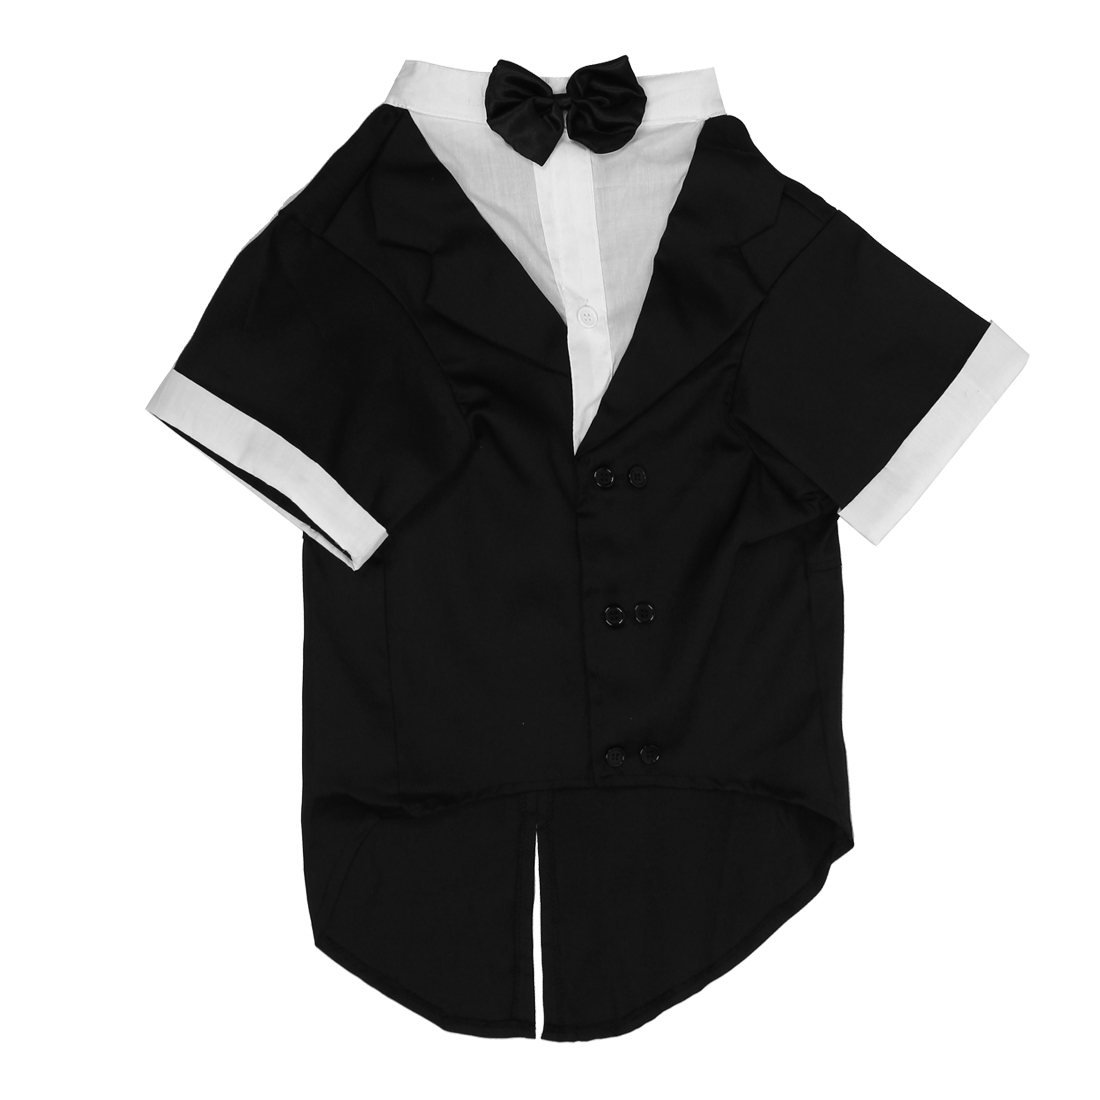 Pet Puppy Mens Suit Western Style Wedding Tuxedo Costume Apparel Black Size 3XL